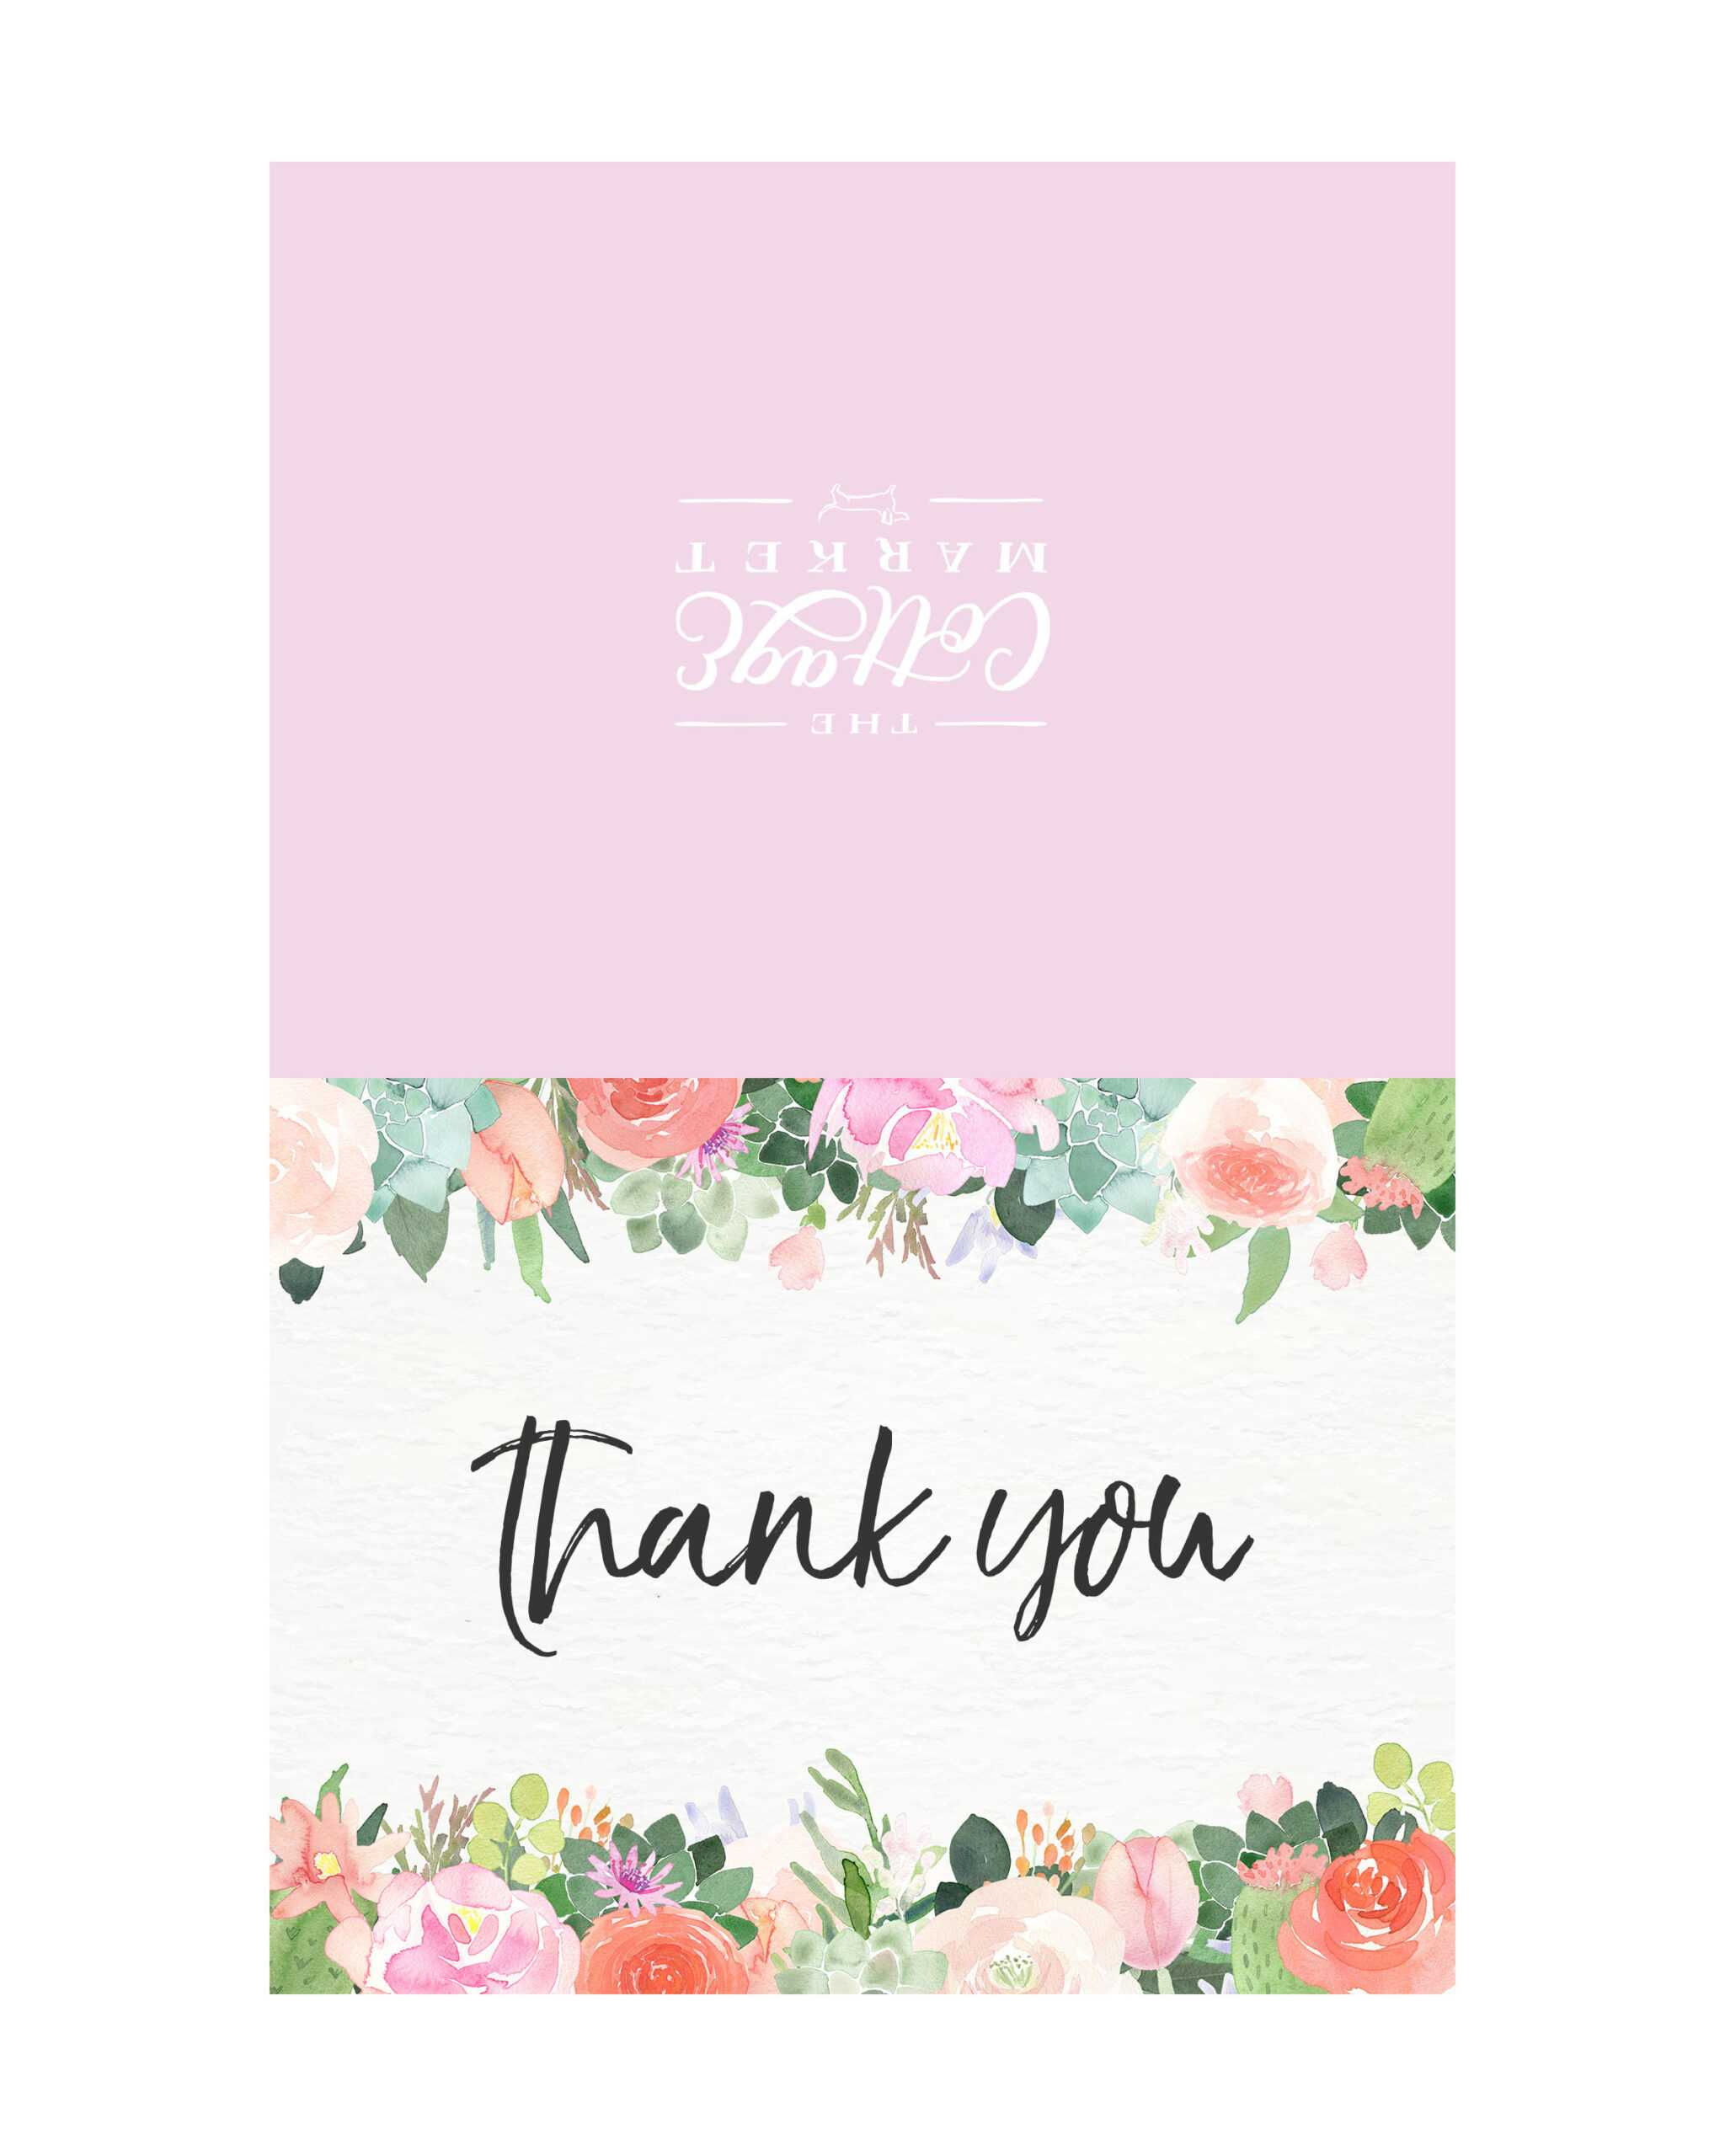 10 Free Printable Thank You Cards You Can't Miss - The For Free Printable Thank You Card Template